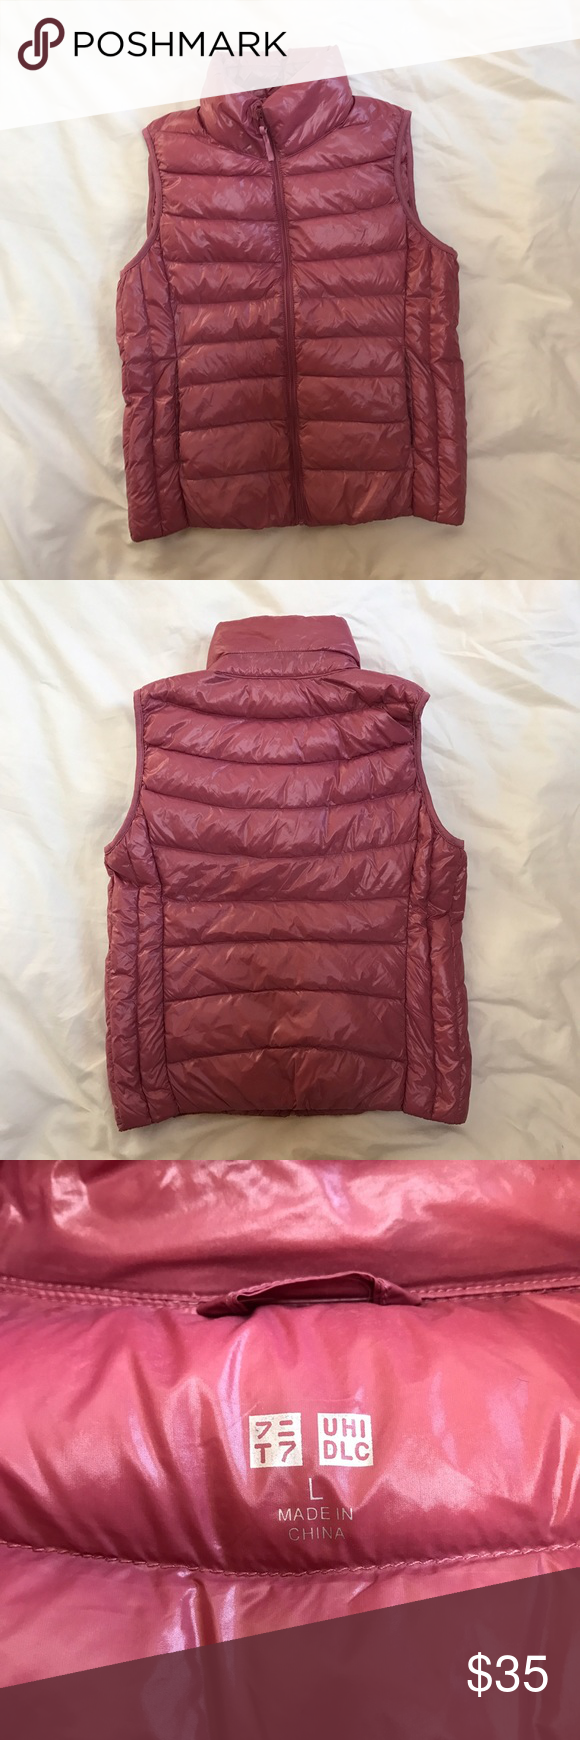 Uniqlo Pink Down Puffer Vest A very cute Uniqlo pink Down